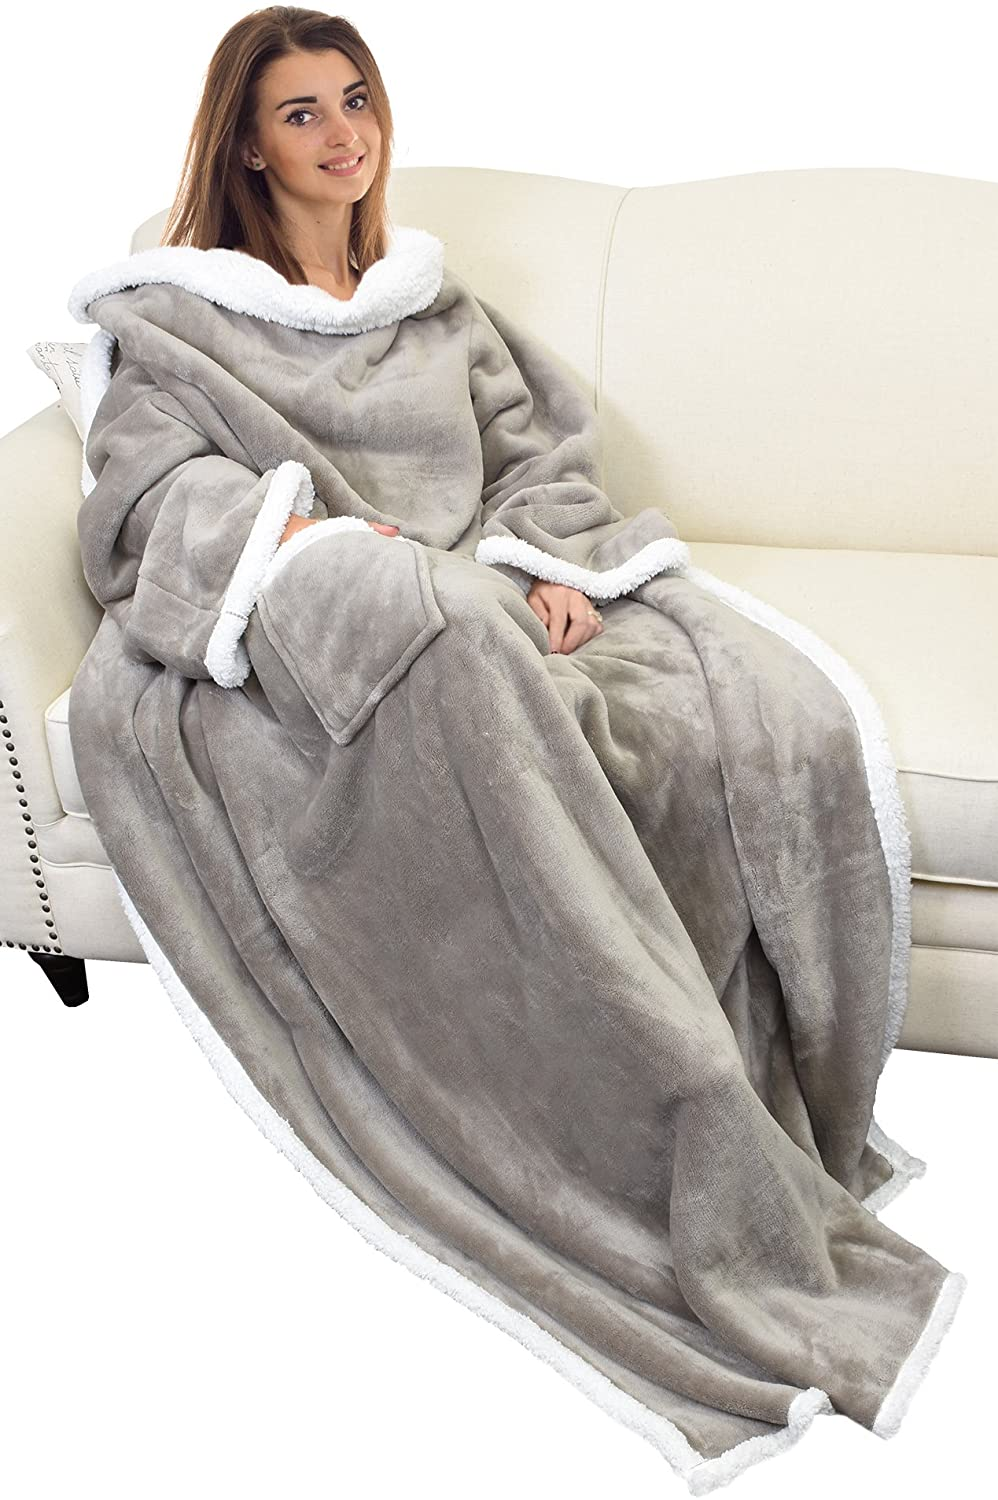 9. Catalonia Sherpa Wearable Blanket with Sleeves